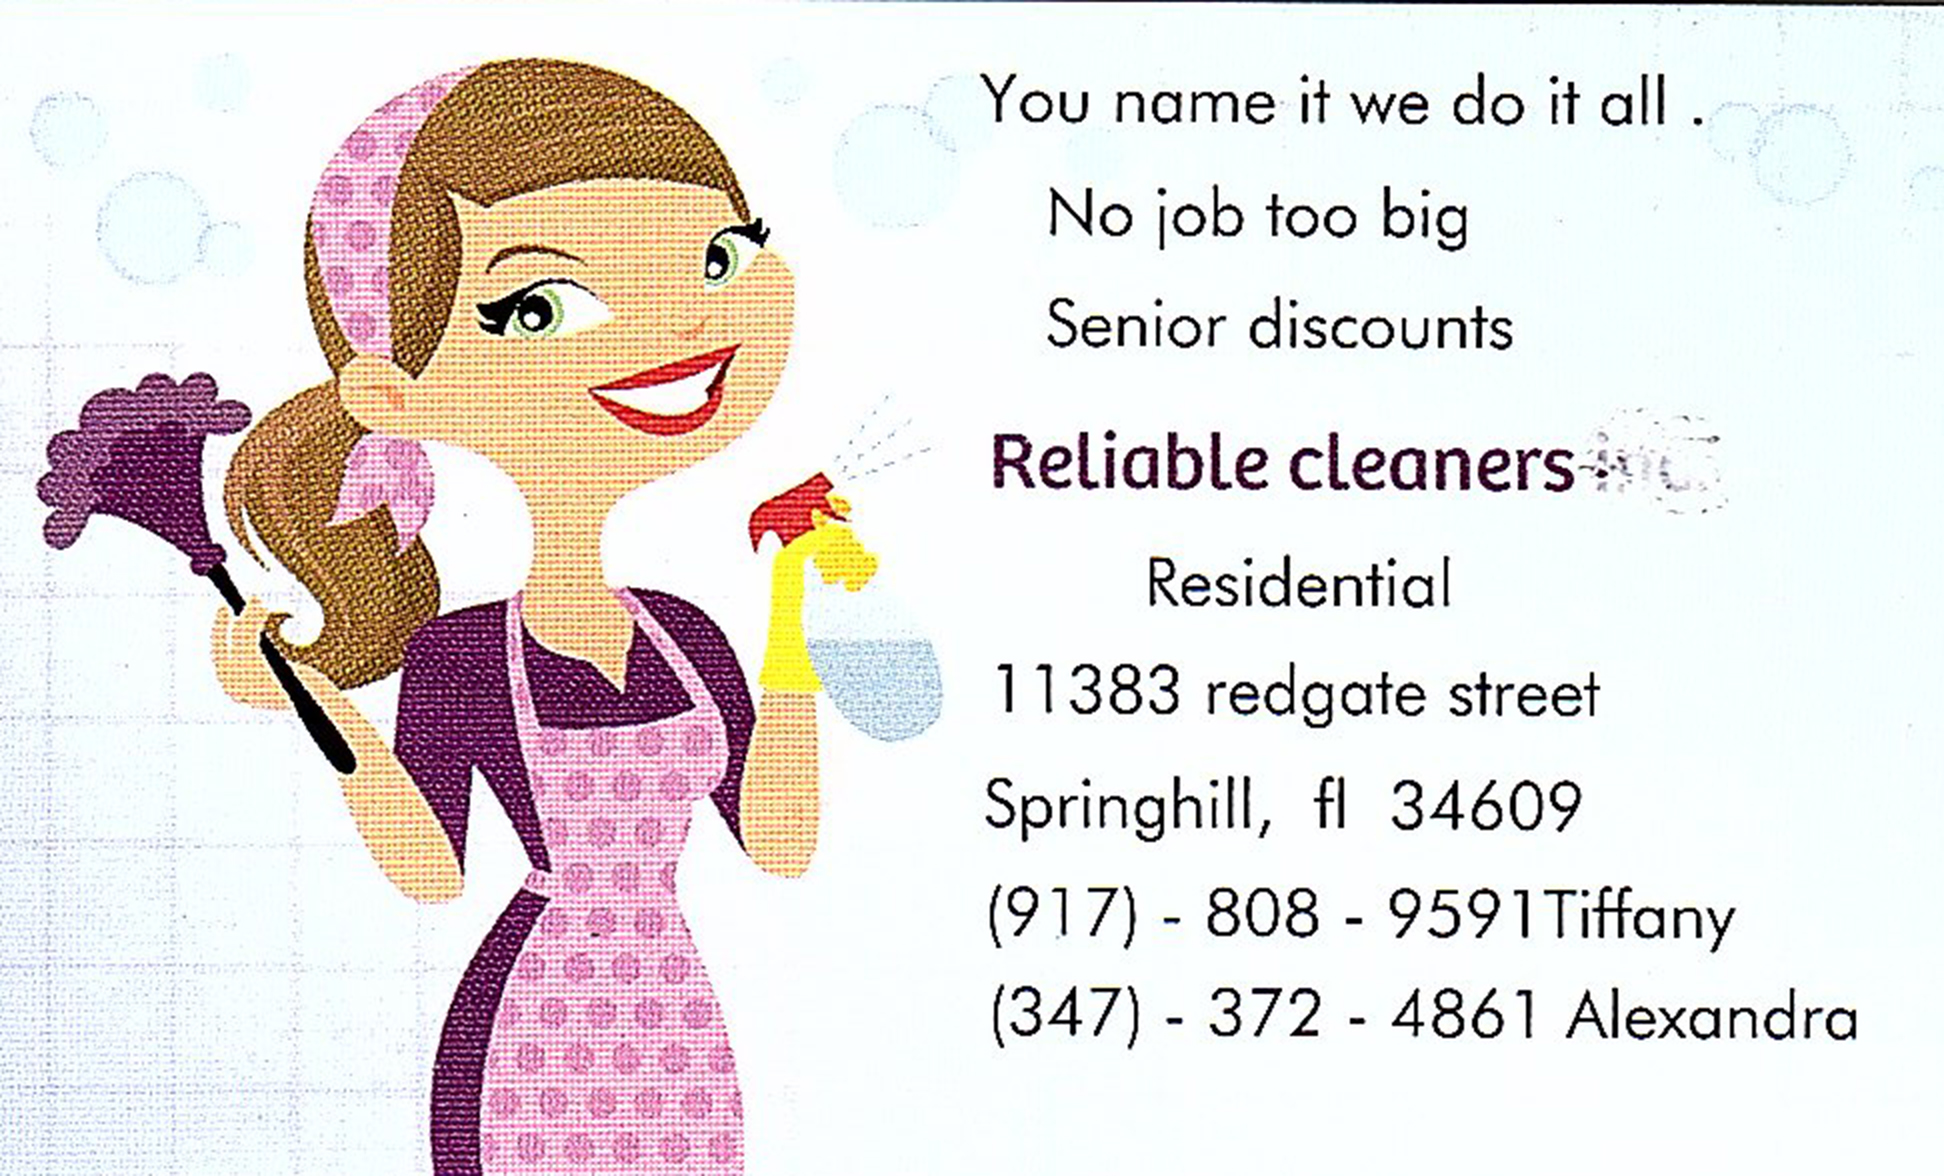 Local Pasco/Hernando County Florida cleaning service